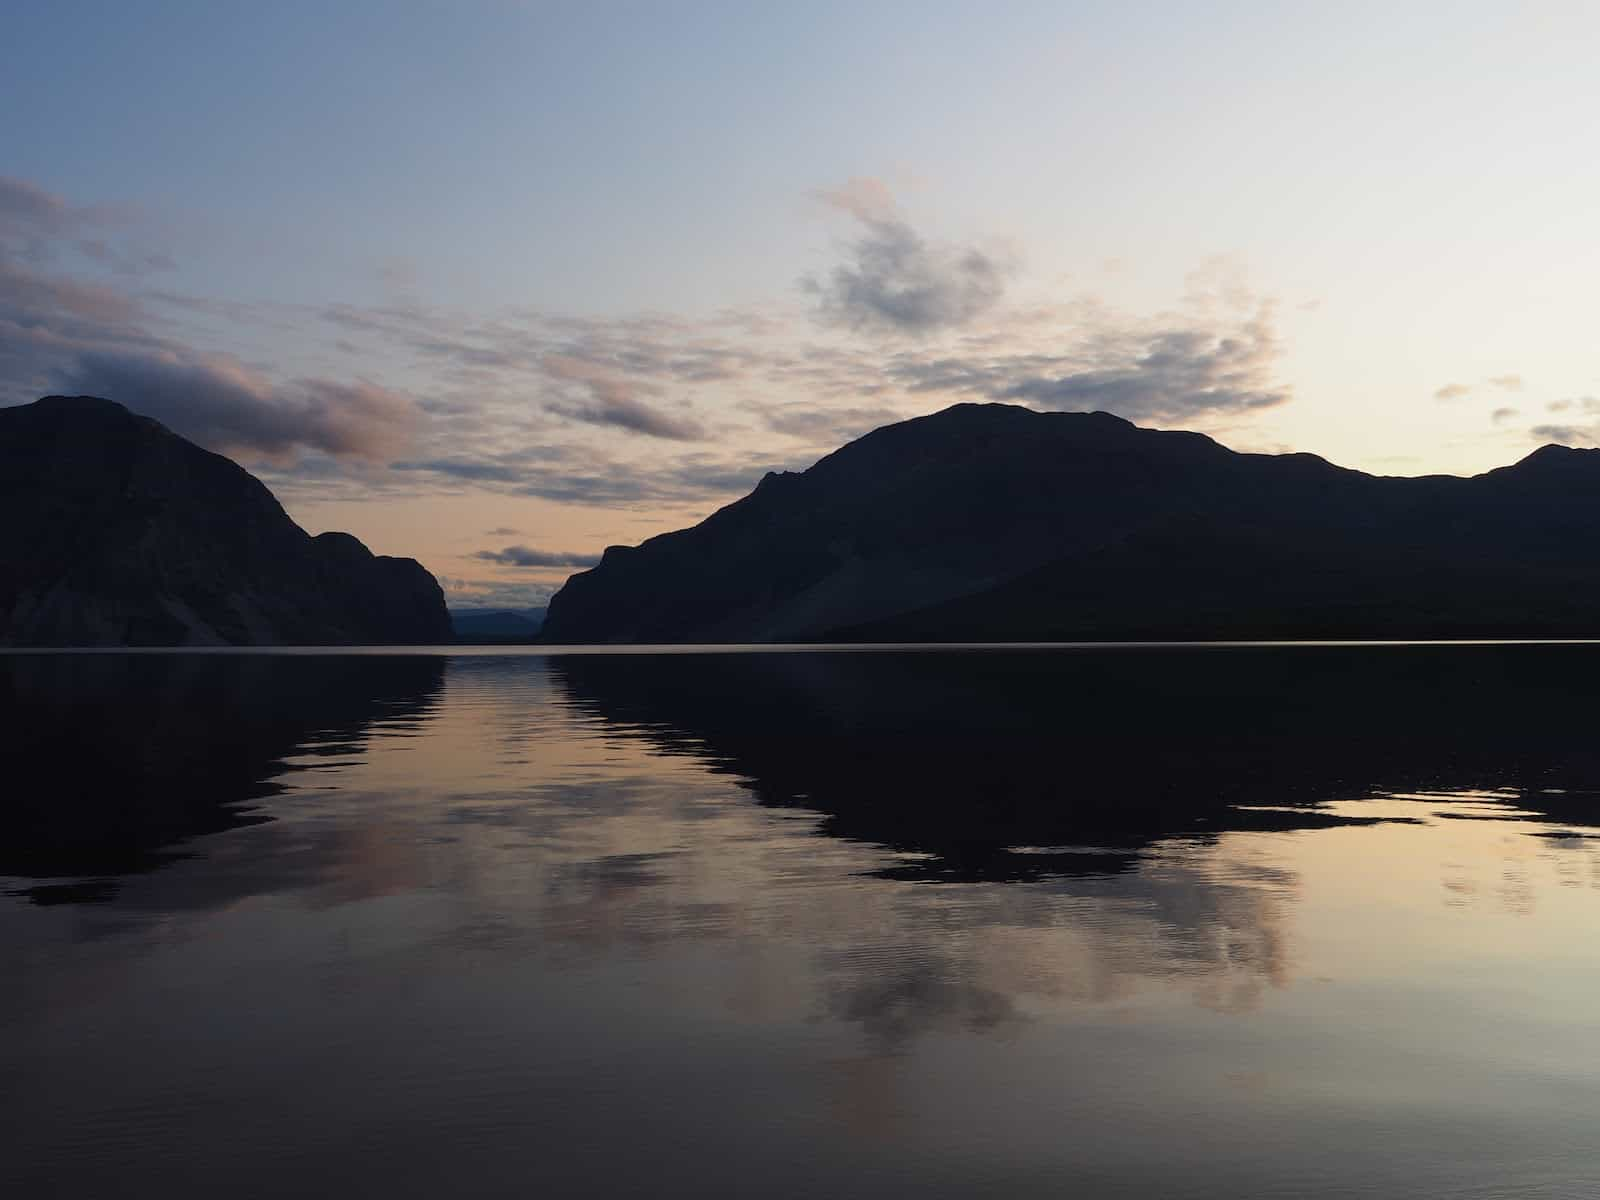 Nahanni River by Canoe: Sunset over a placid lake.